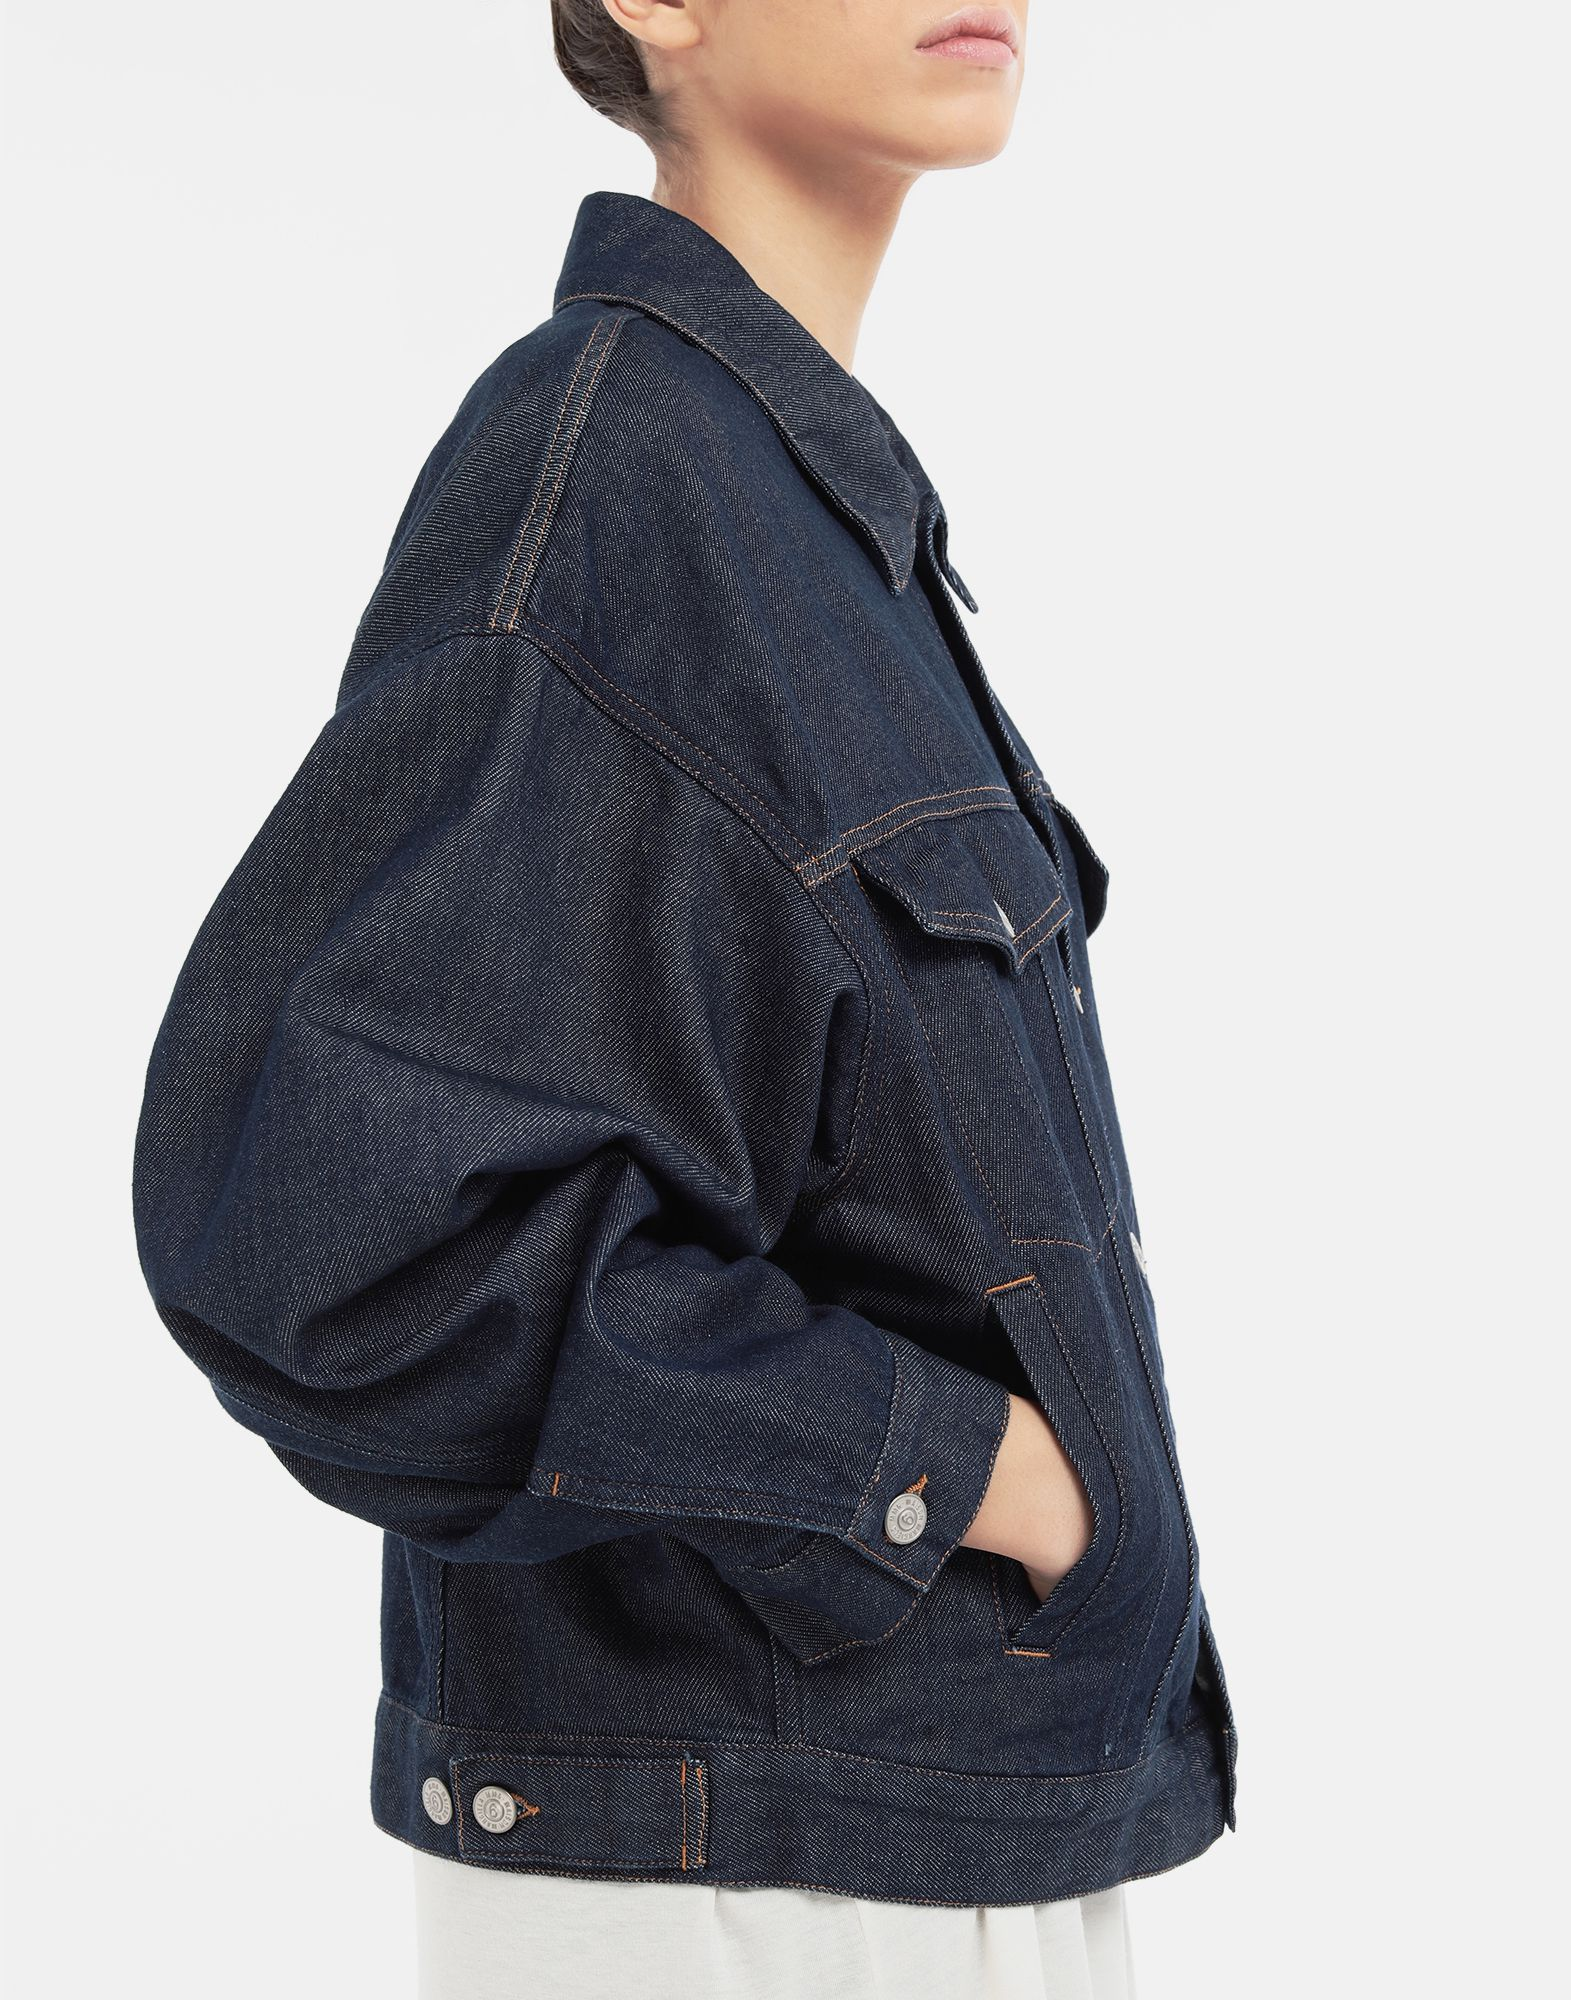 MM6 MAISON MARGIELA Oversized denim jacket Light jacket Woman a